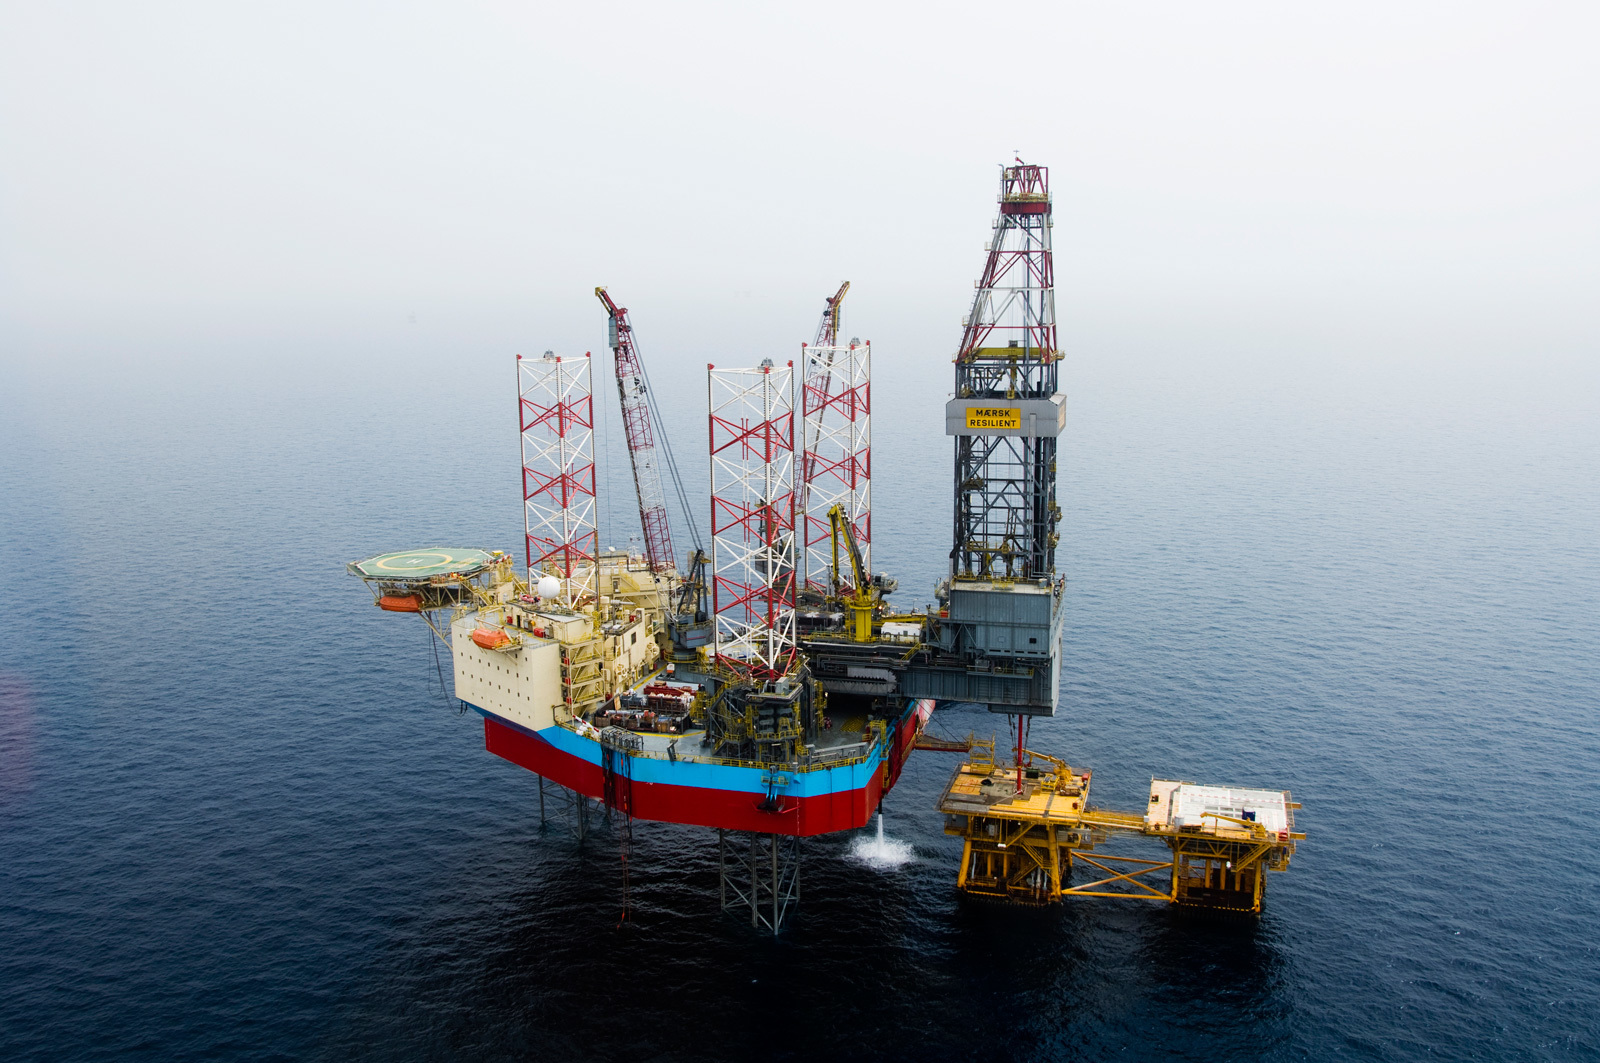 The Maersk Resilient drilled an appraisal at IOG's Harvey discovery in September.